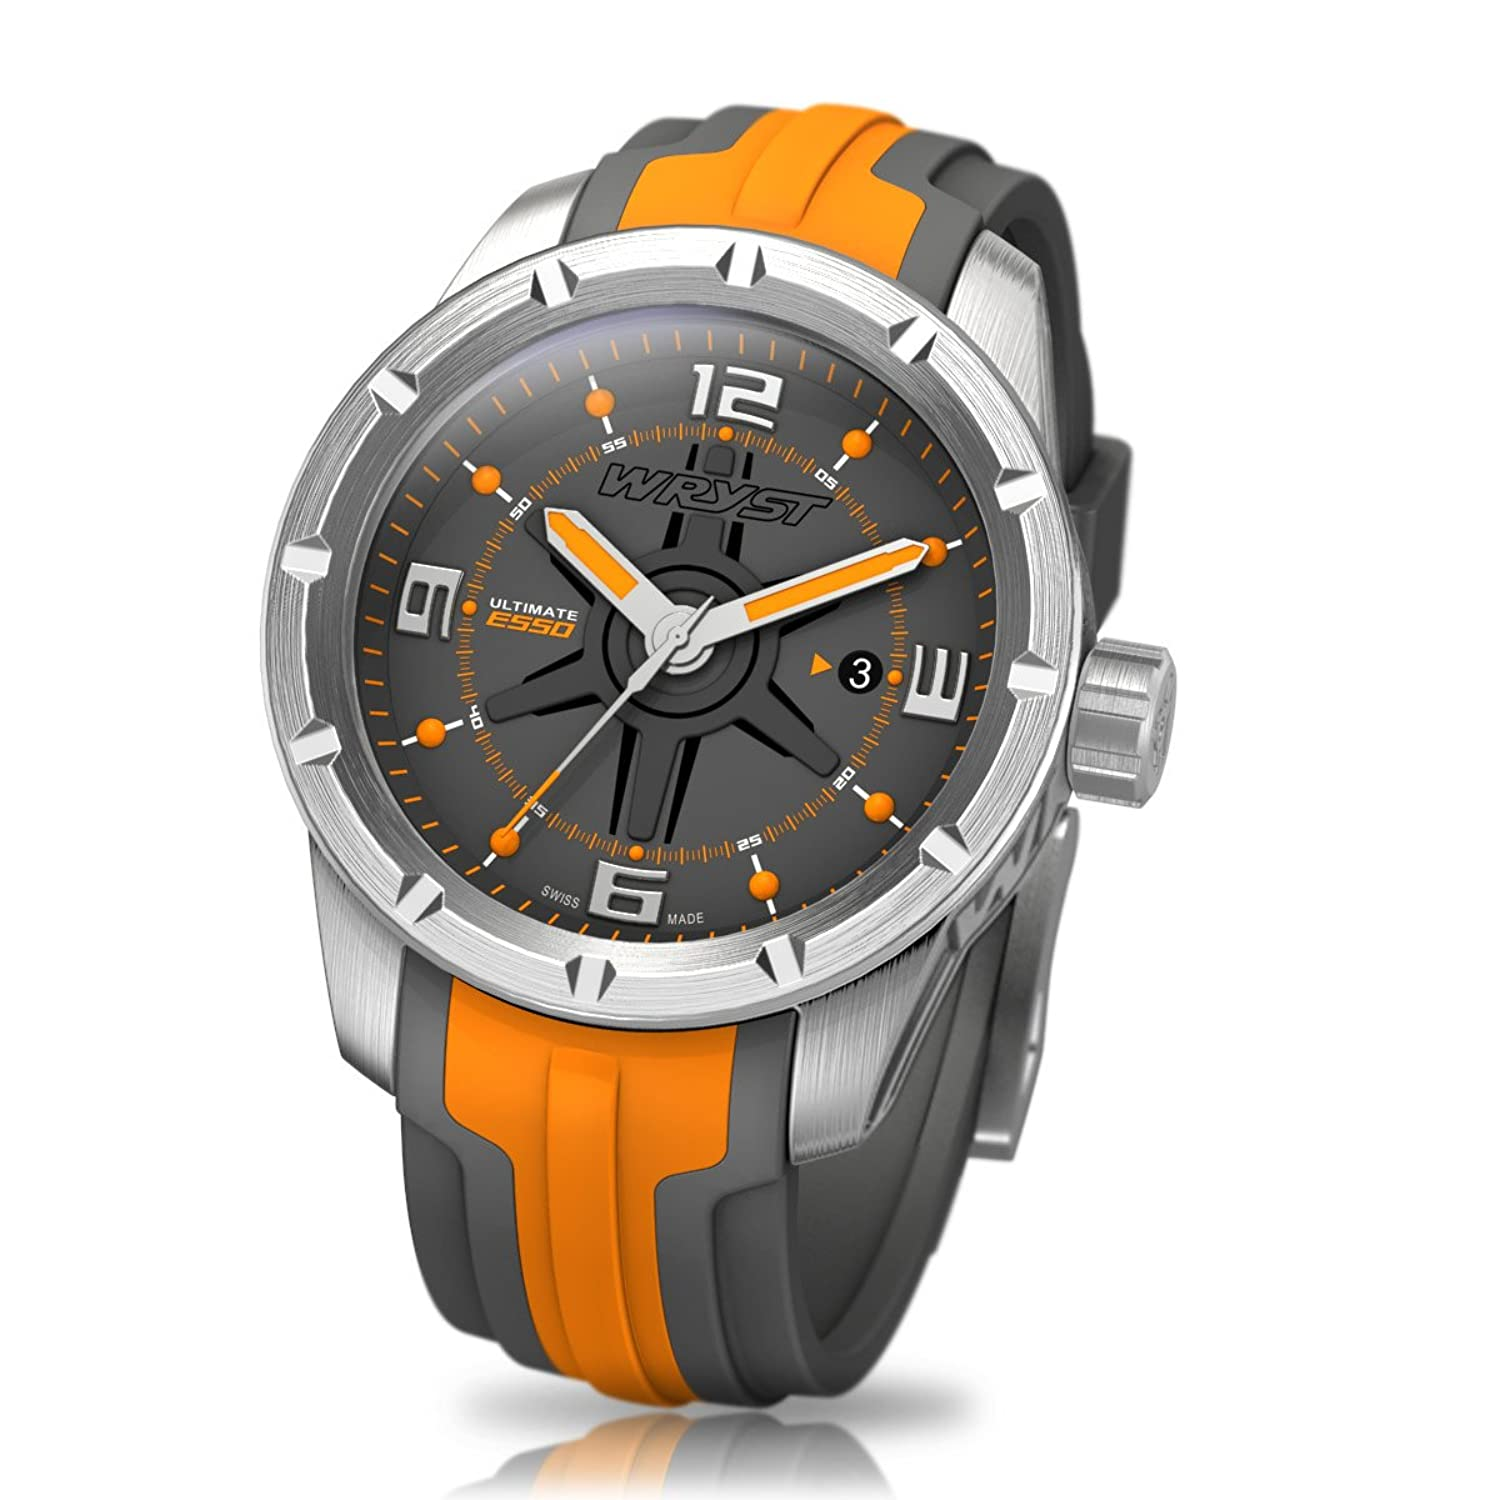 Orange Swiss Sport Armbanduhr wryst Ultimate ES50 FÜr extreme sports